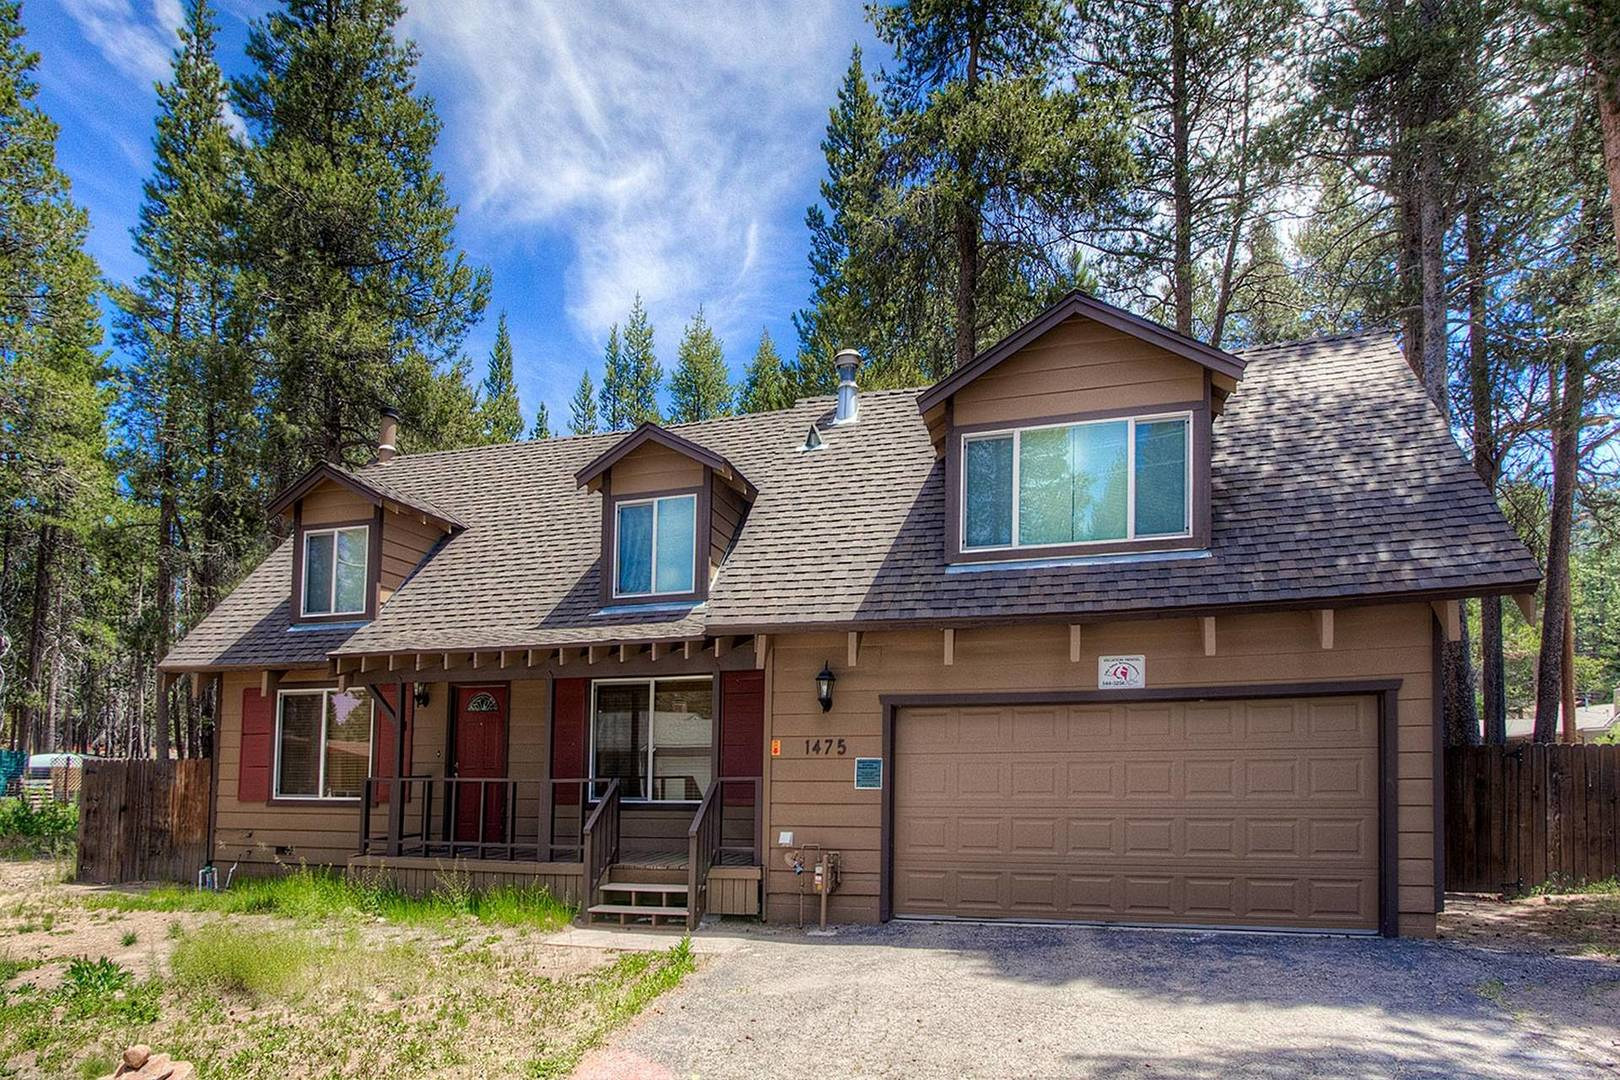 hch1075 lake tahoe vacation rental